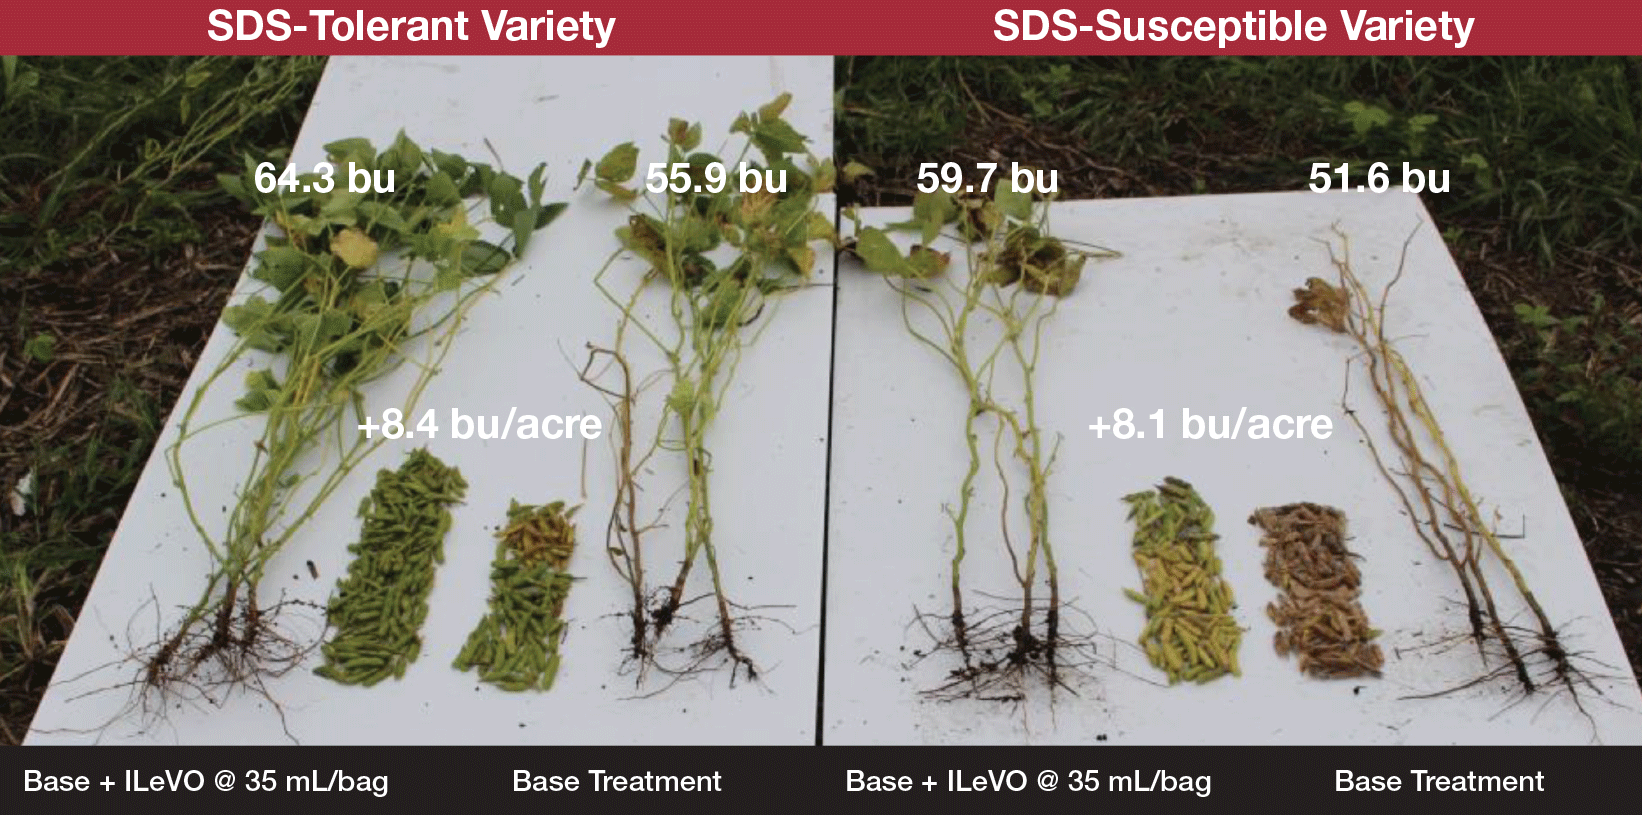 ILeVO treatment of soybean varieties with varying SDS susceptibility.